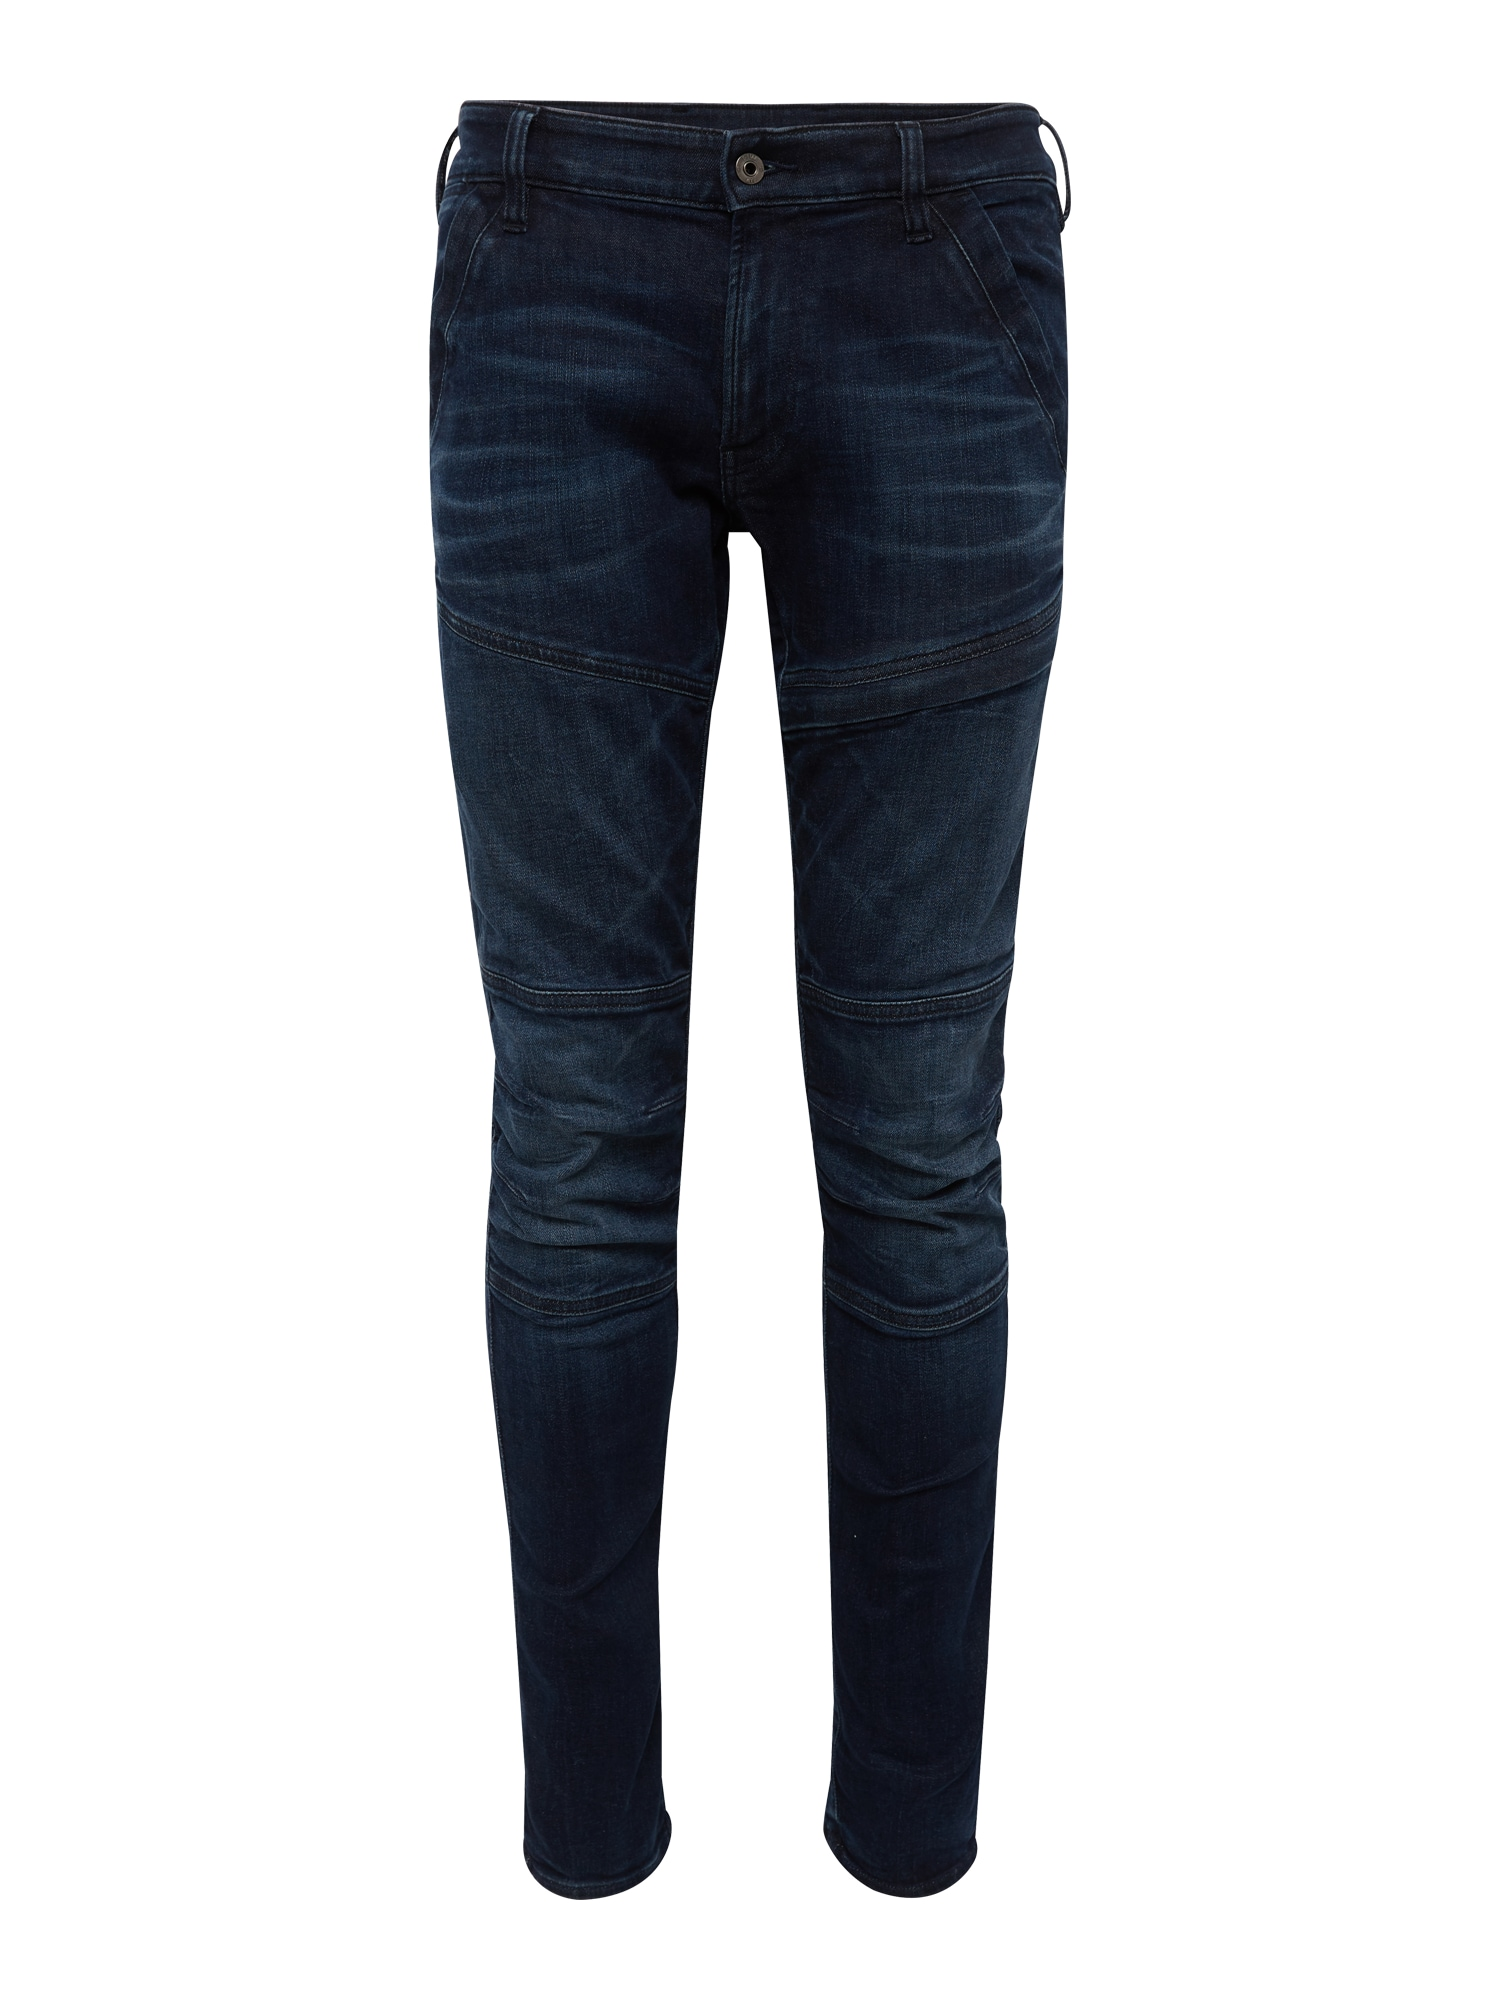 G-STAR RAW Heren Jeans Rackam Super Slim blue denim